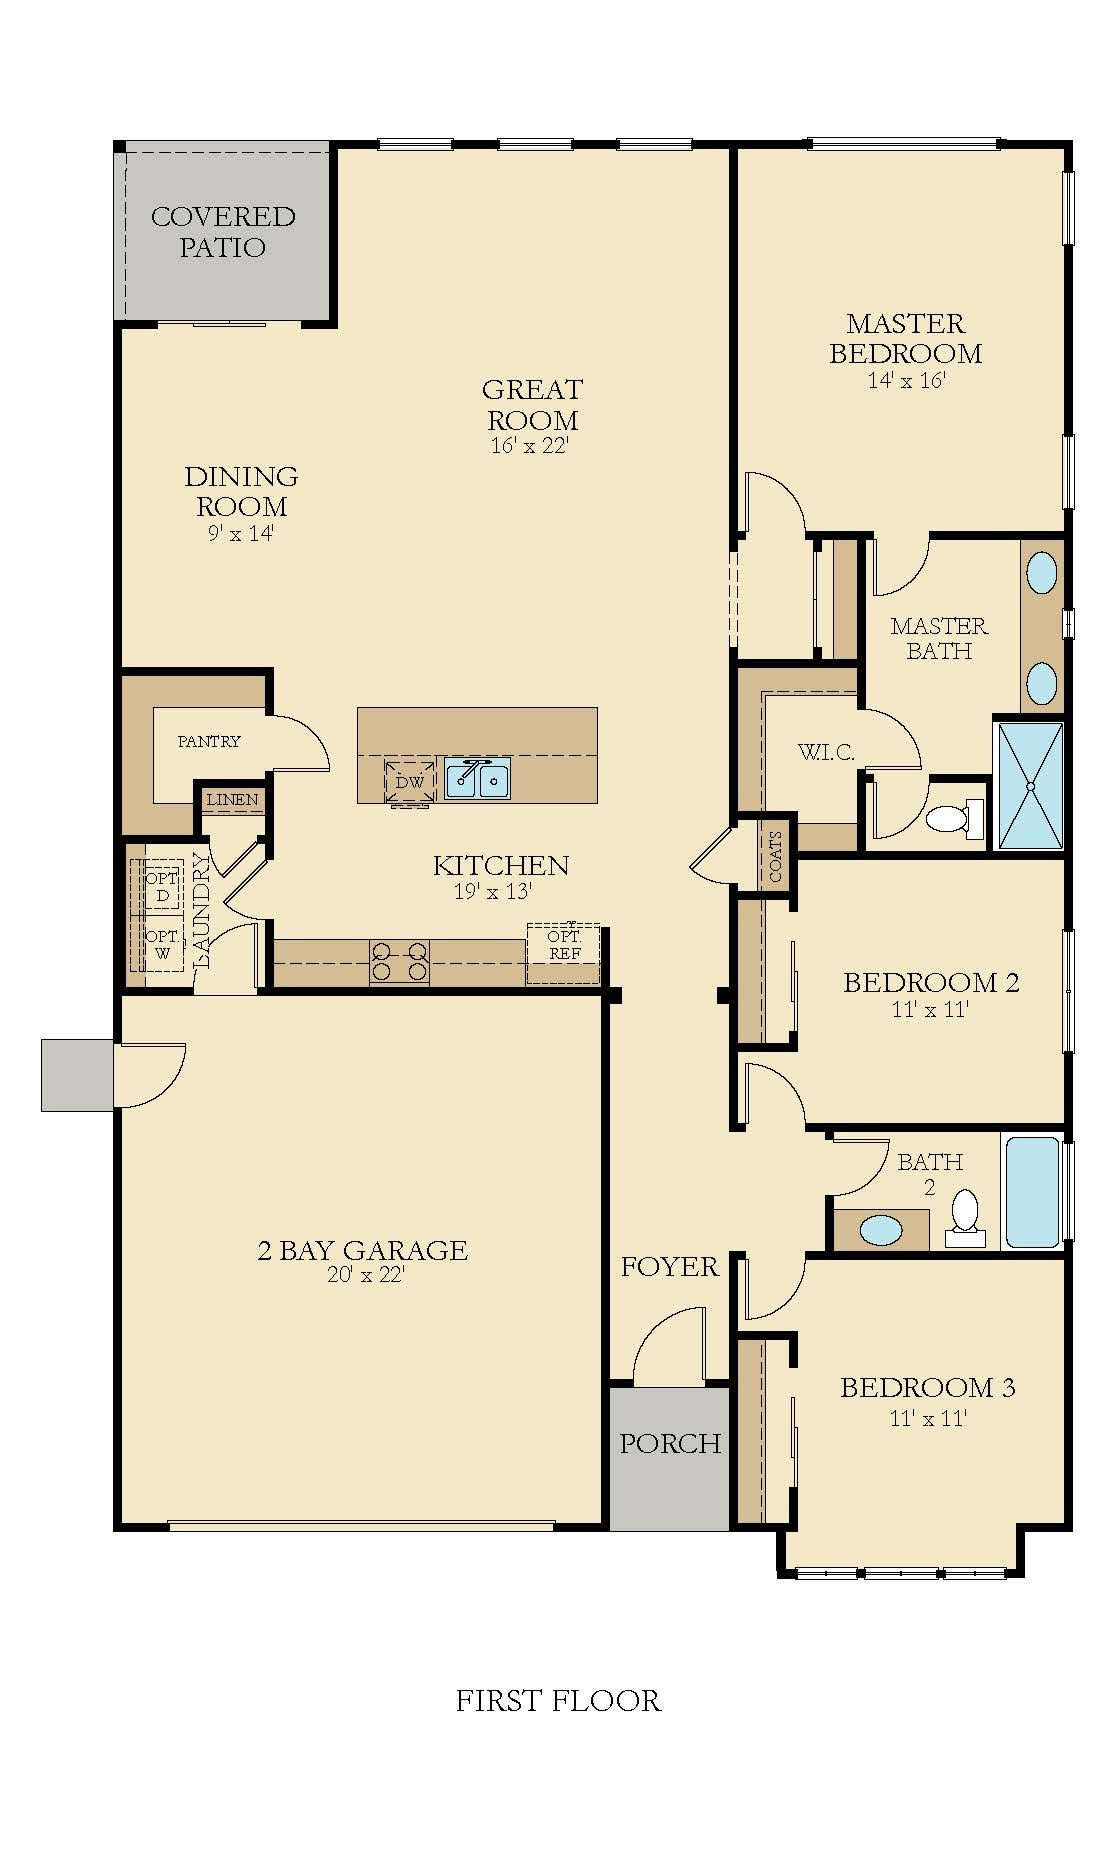 Simple Floorplan With 3 Bedrooms 2 Bathroom Foyer And Walk In Pantry New House Plans California Homes New Home Construction